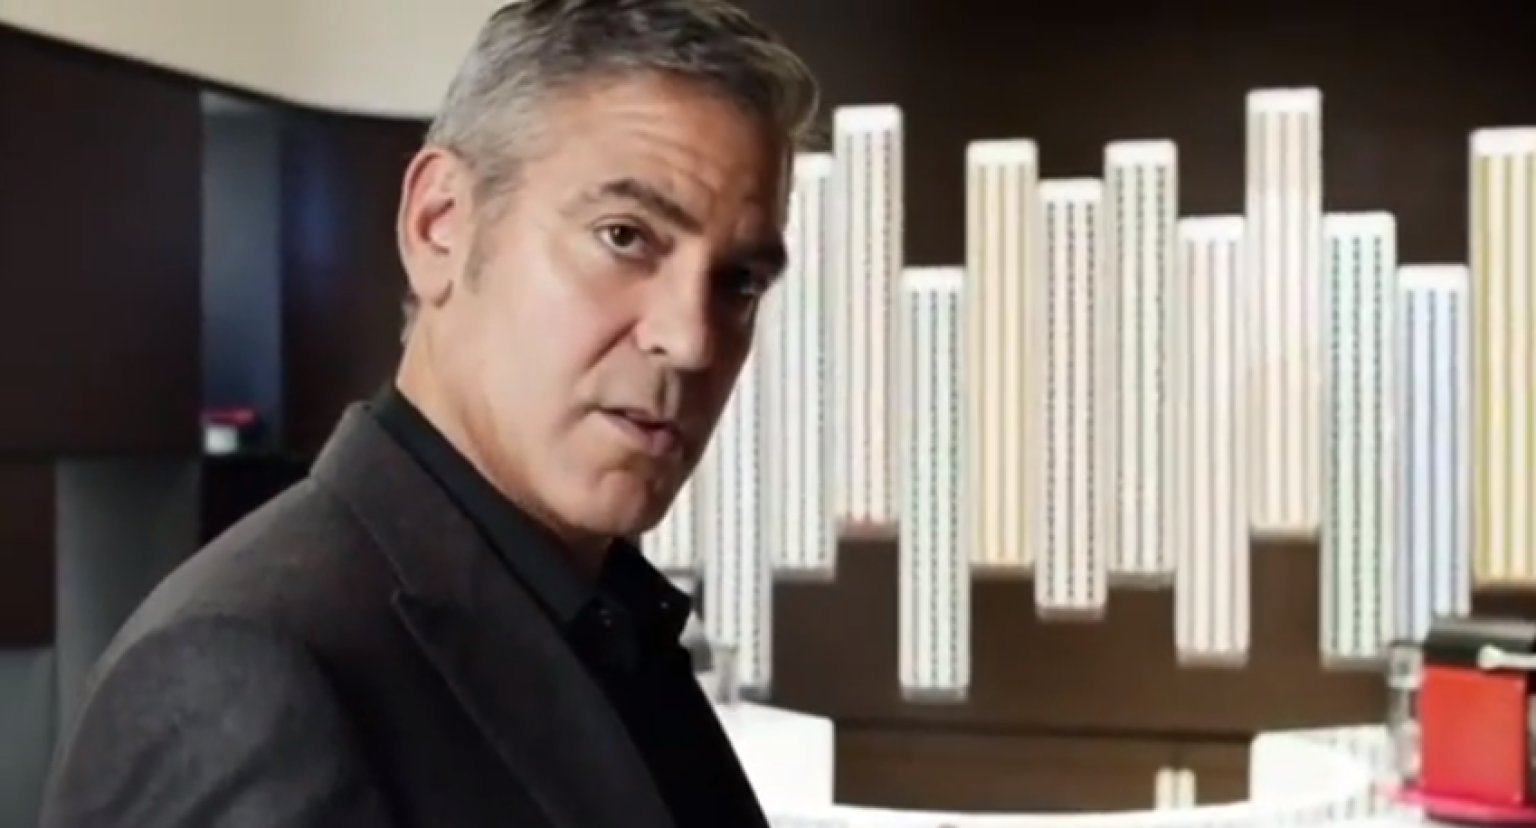 George clooney spends nespresso paycheck on spy satellite to keep tabs on omar al bashir huffpost